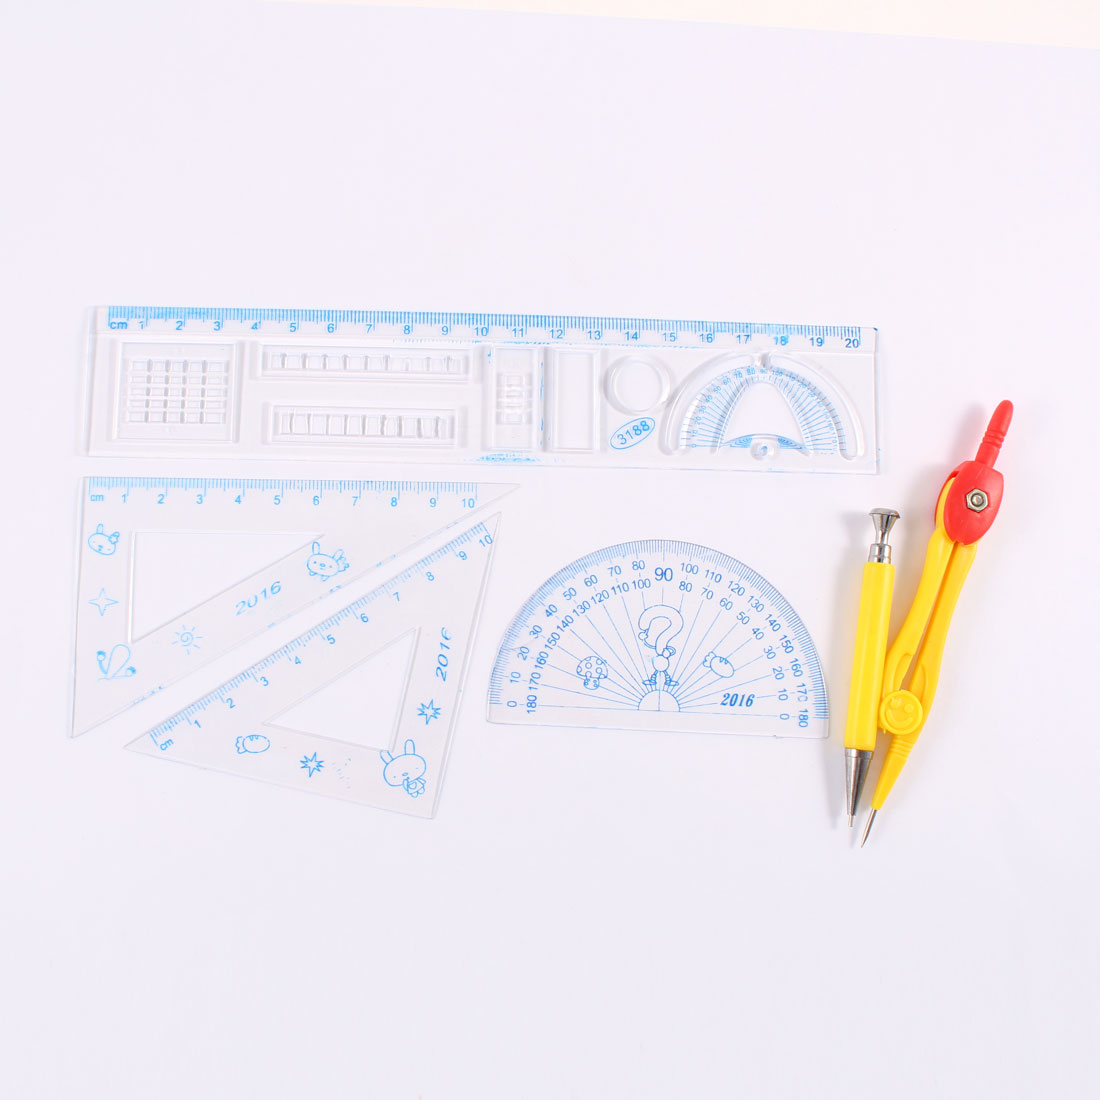 5 in 1 Yellow Compass Set Square Centimeter Ruler Protractor for Students